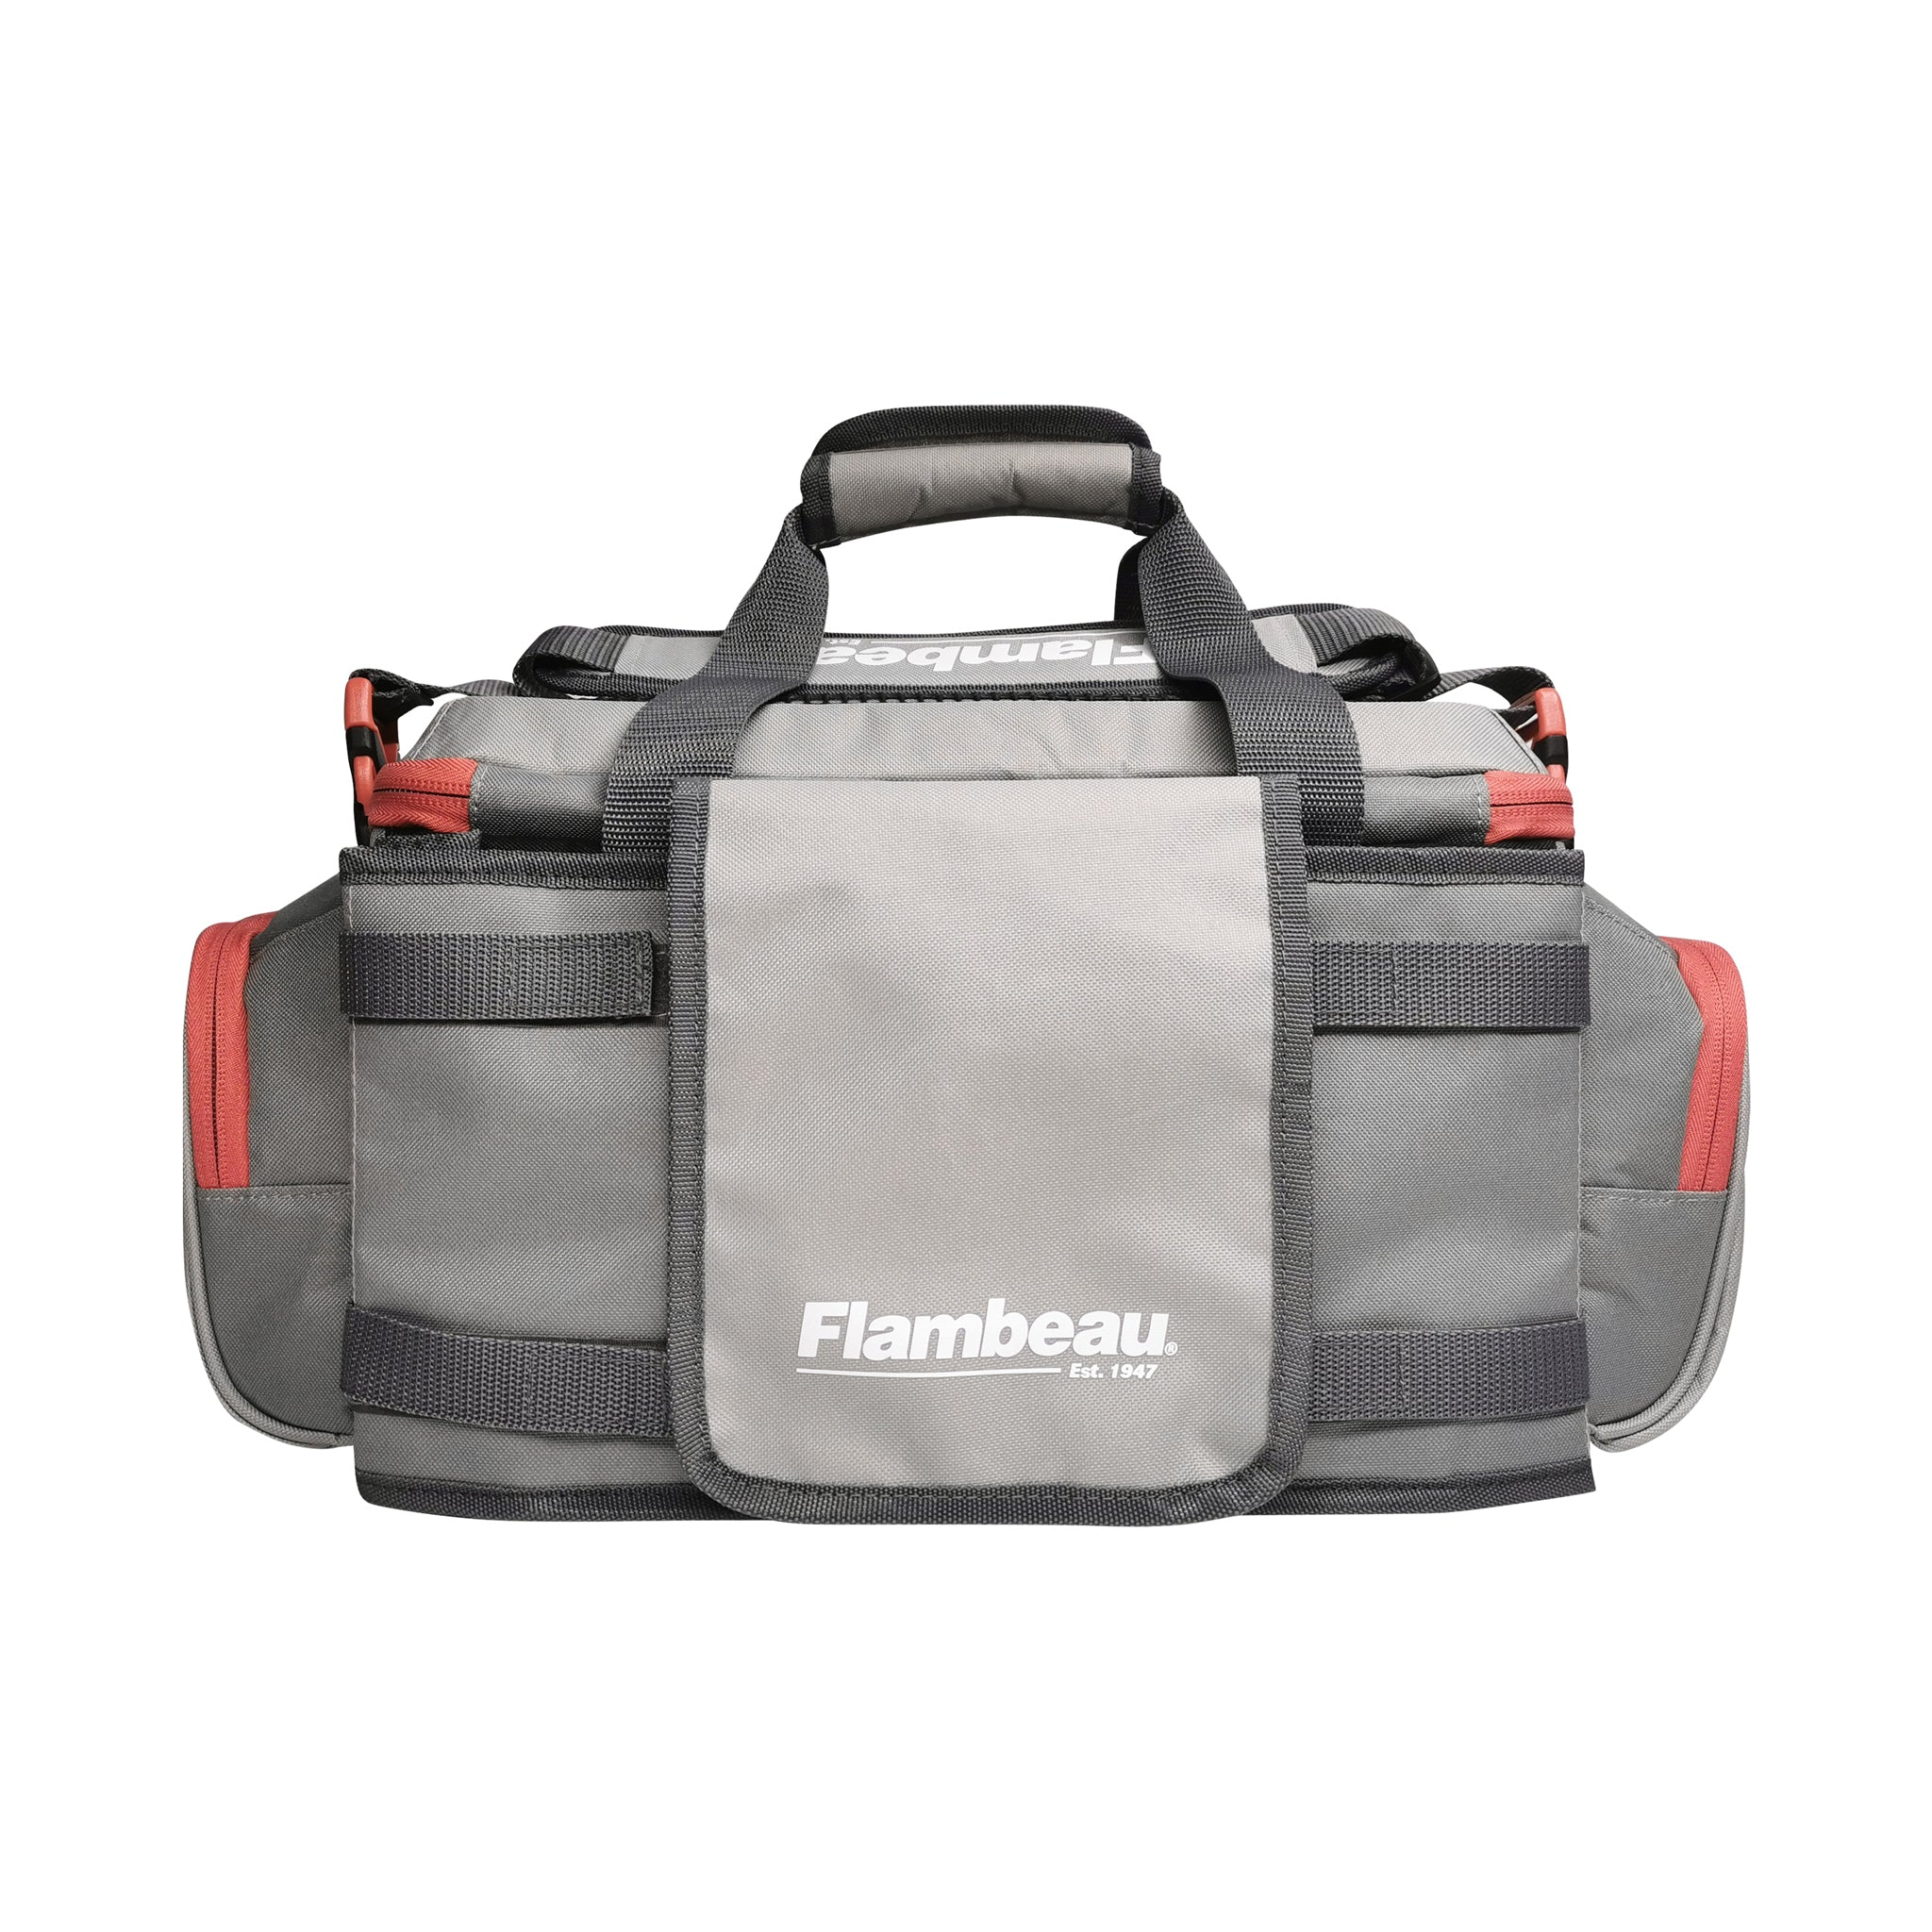 5007 Flambeau Pro-Angler Tackle Bag (Grey-Red)